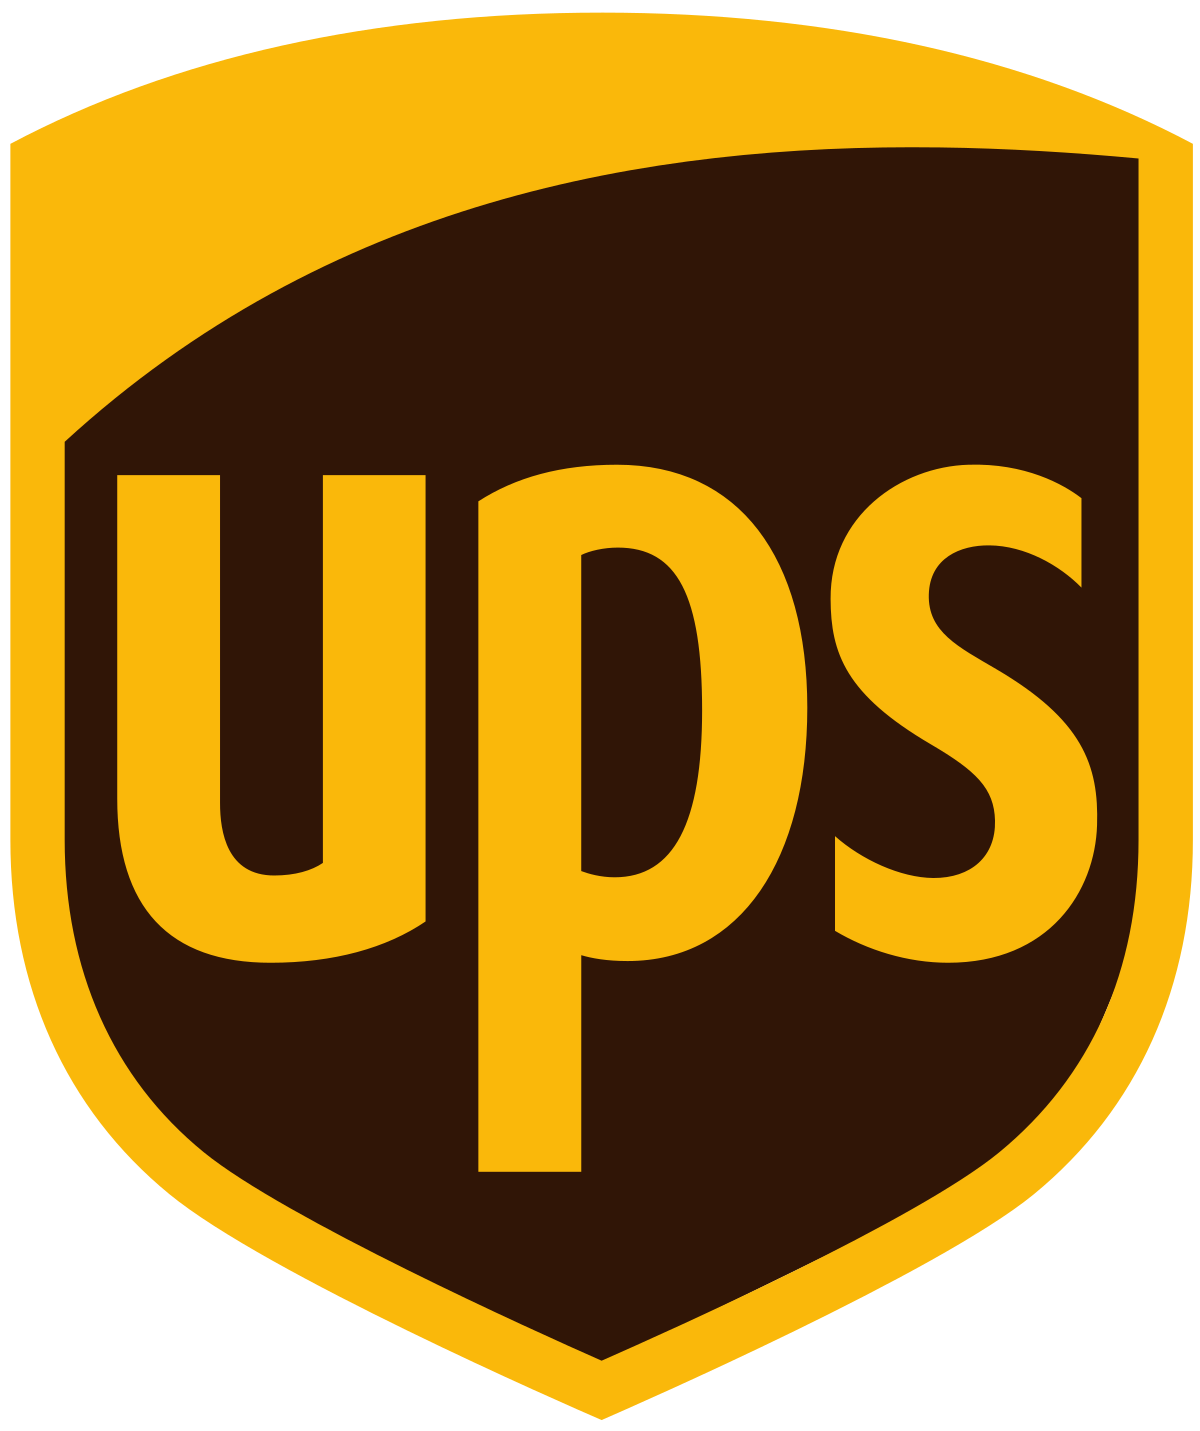 Fed Ex clipart big truck Wikipedia  Service United Parcel